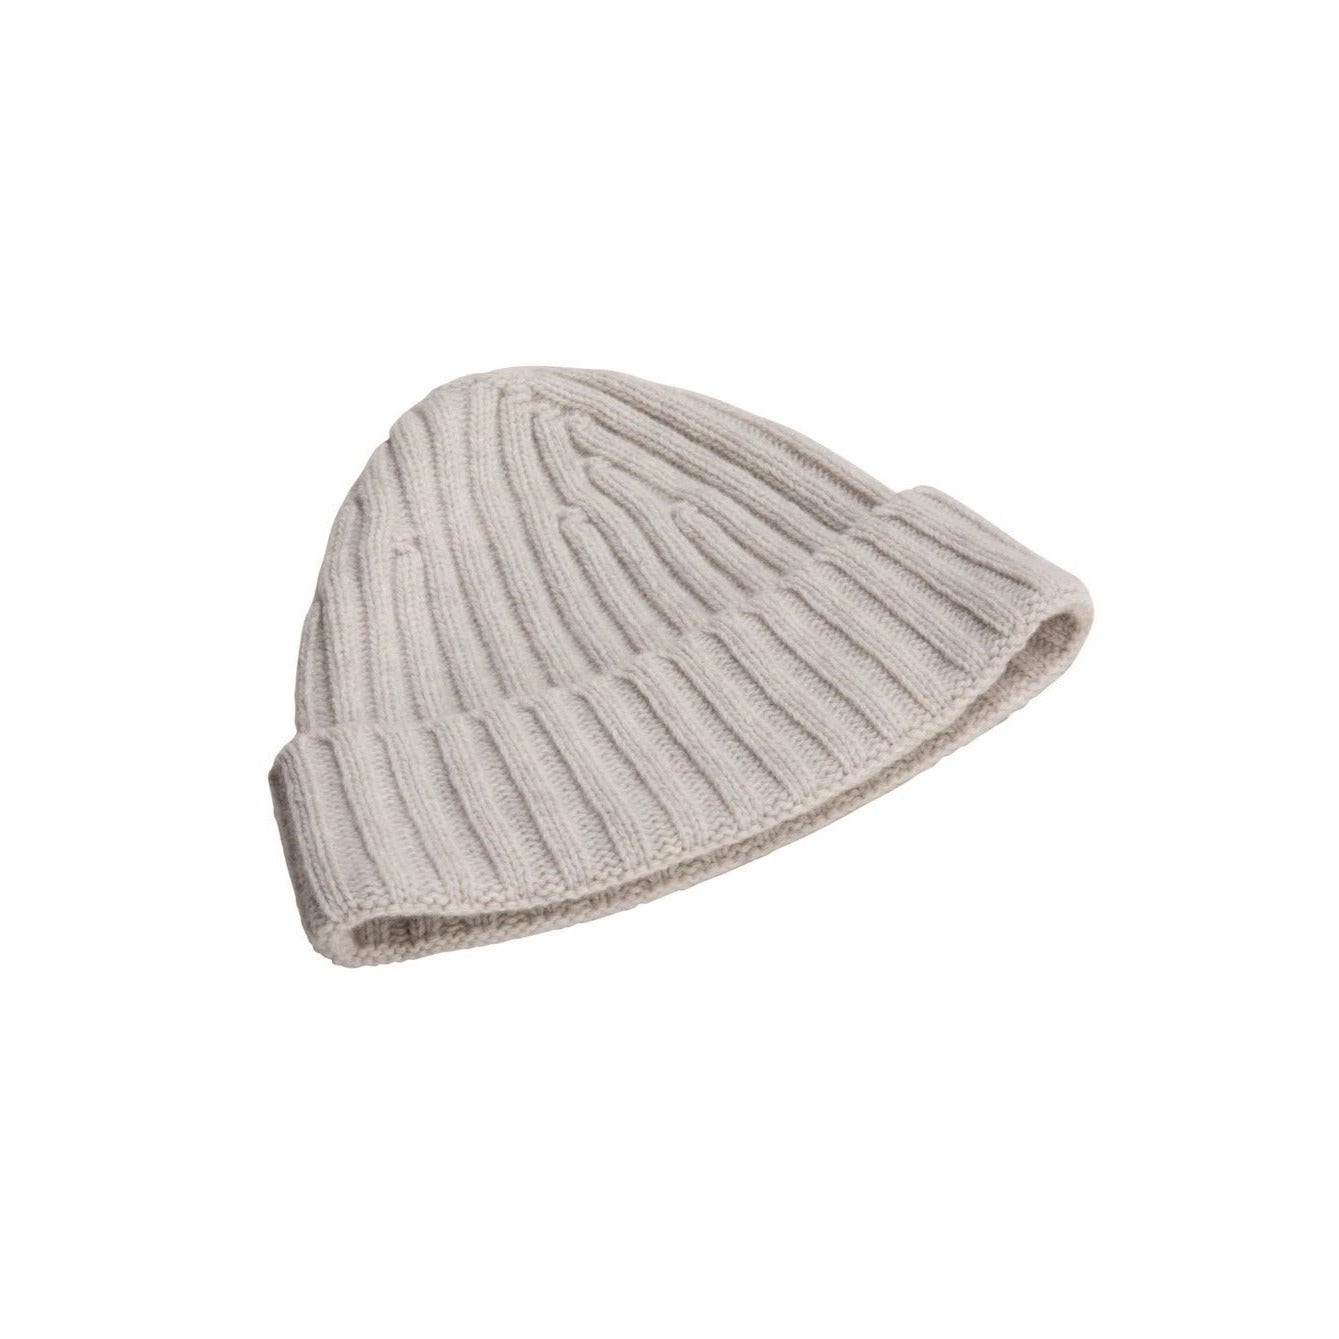 North Outdoor - Viklo Beanie - 100% Merino Wool - Weekendbee - sustainable sportswear